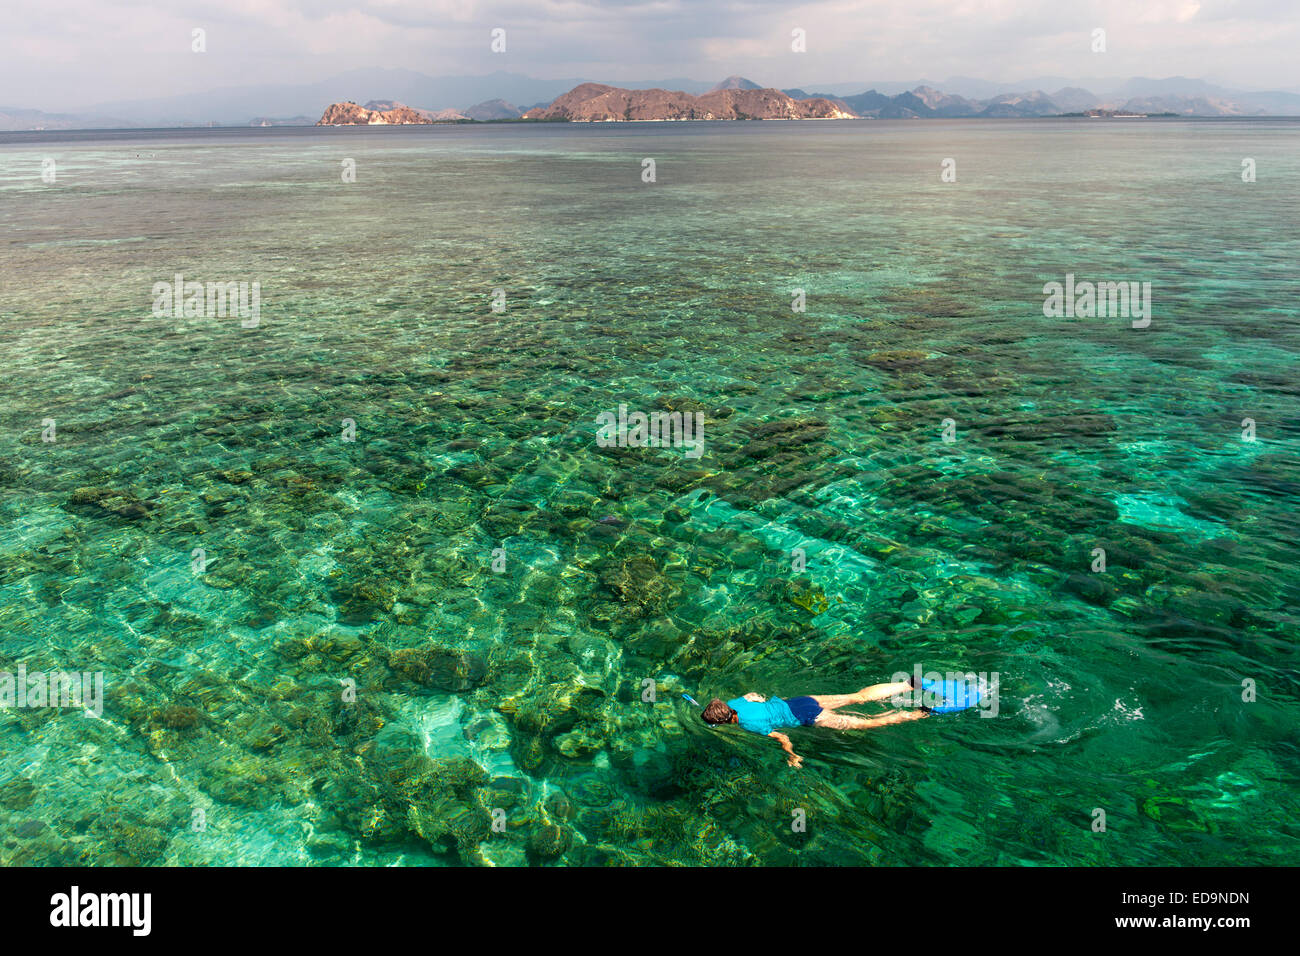 A tourist snorkeling in the waters off the western coast of Flores island, Indonesia. - Stock Image